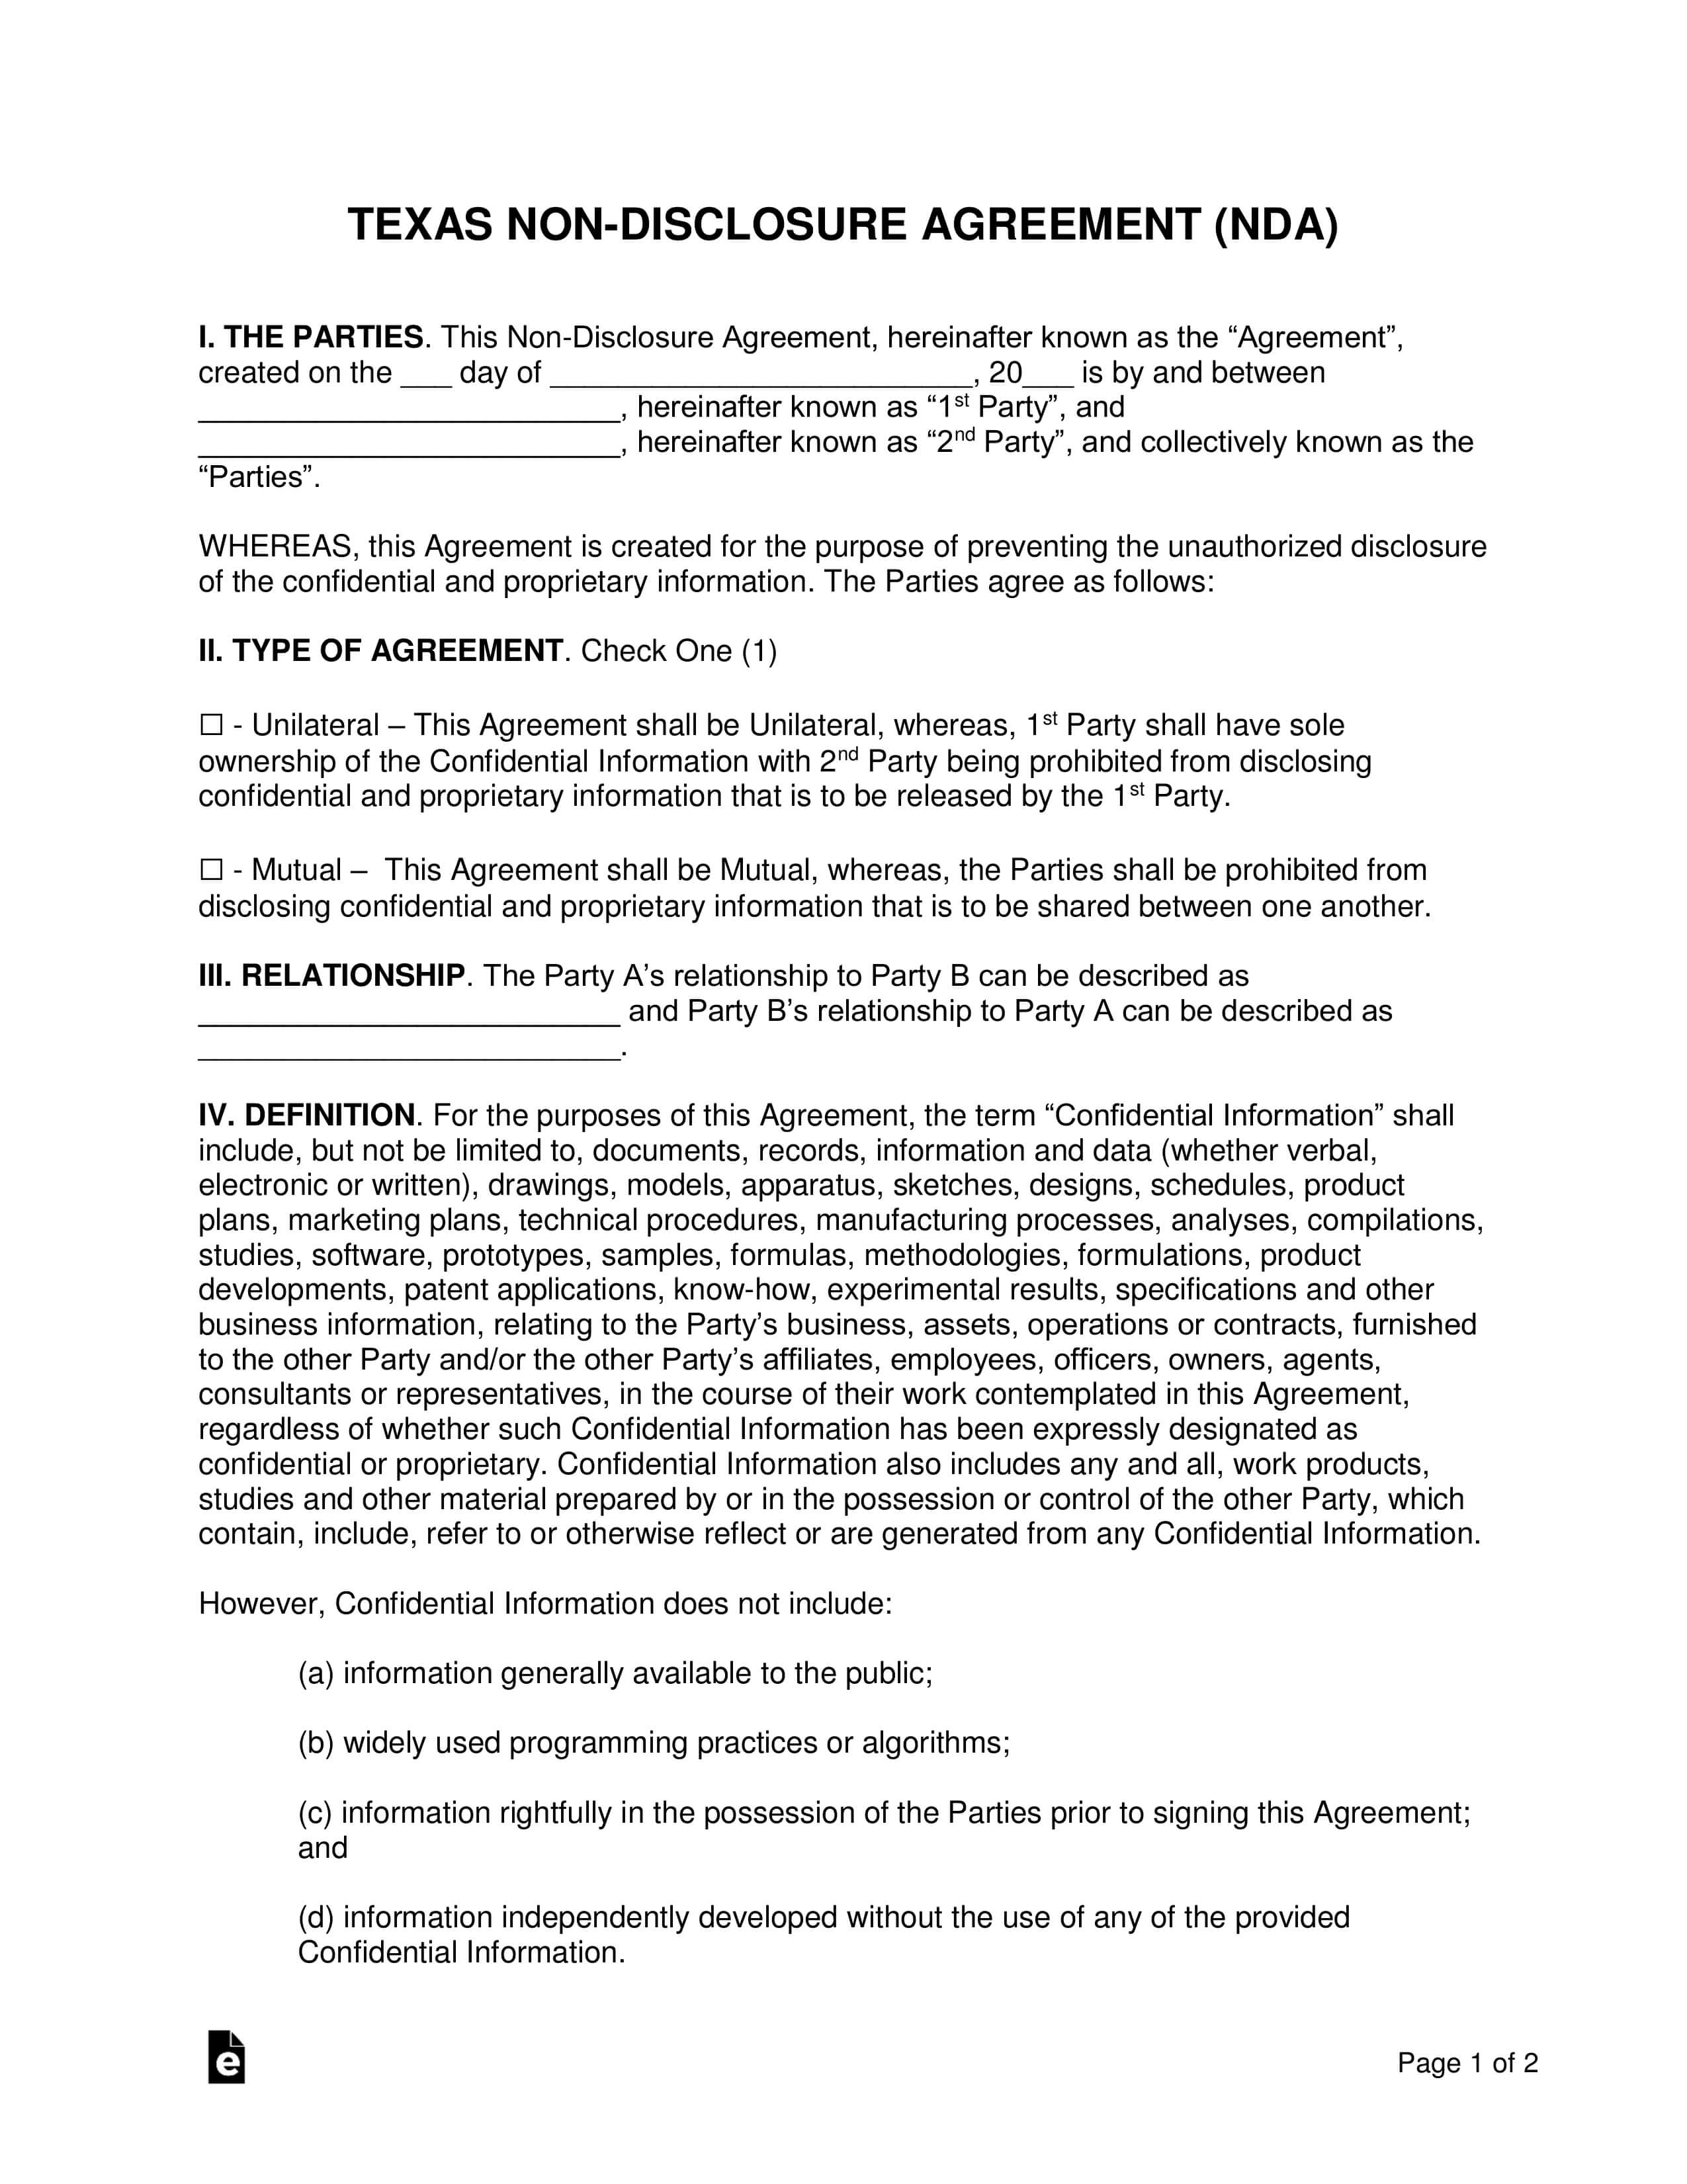 Texas Non-Disclosure Agreement (Nda) Template | Eforms with regard to Nda Template Word Document